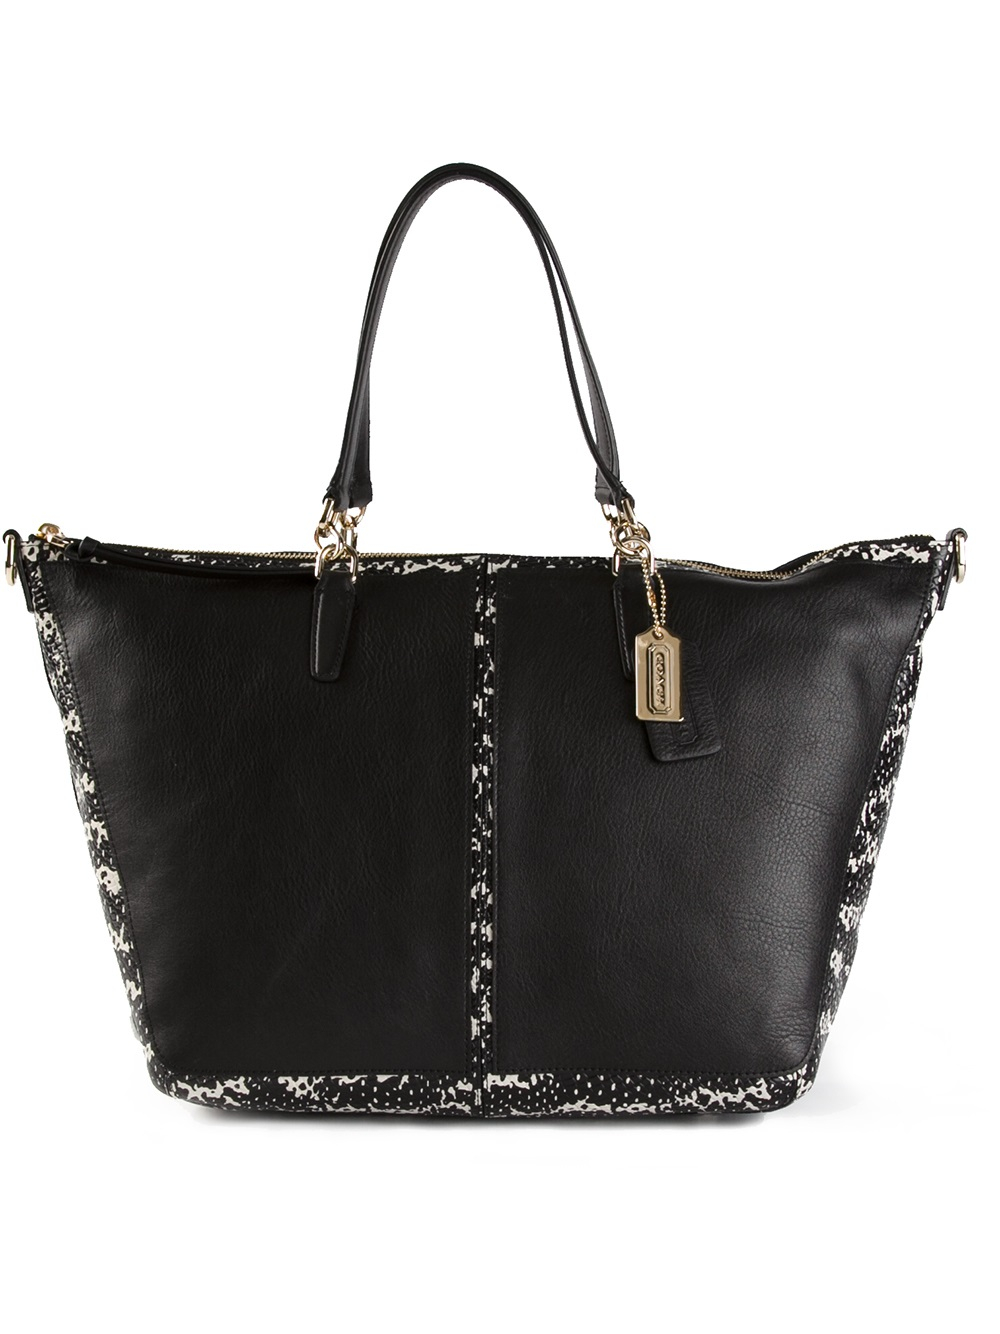 COACH Large Tote Bag in Black - Lyst